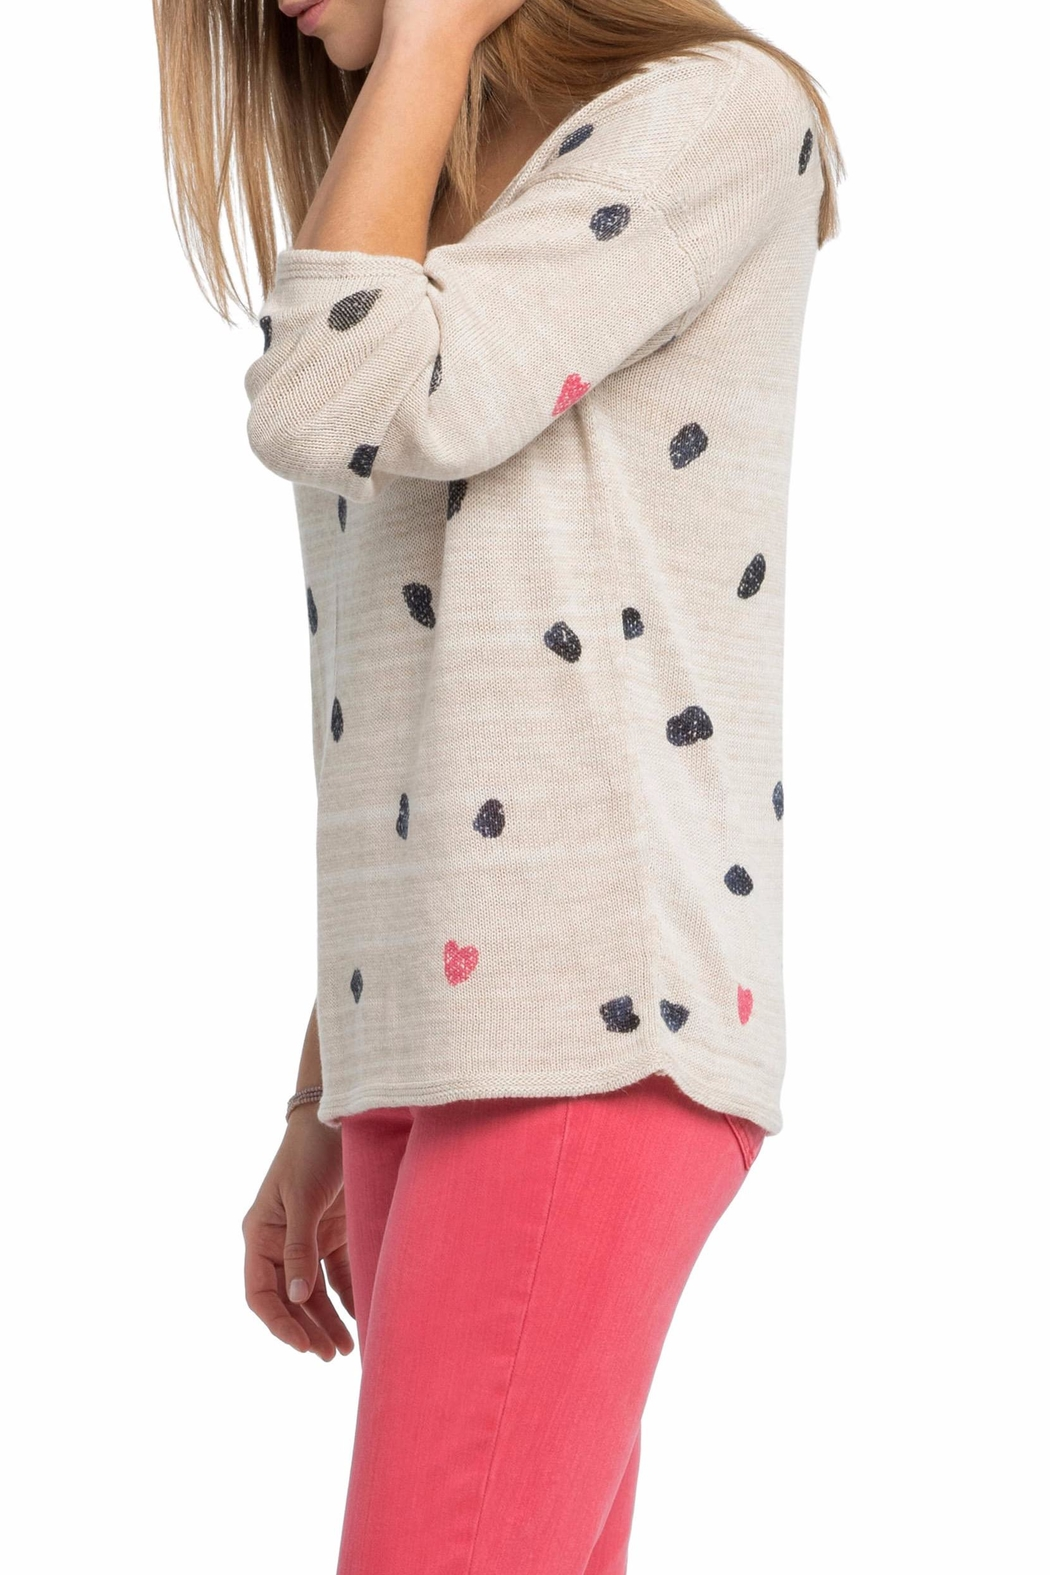 Nic + Zoe Sweetheart Dot Sweater - Front Full Image